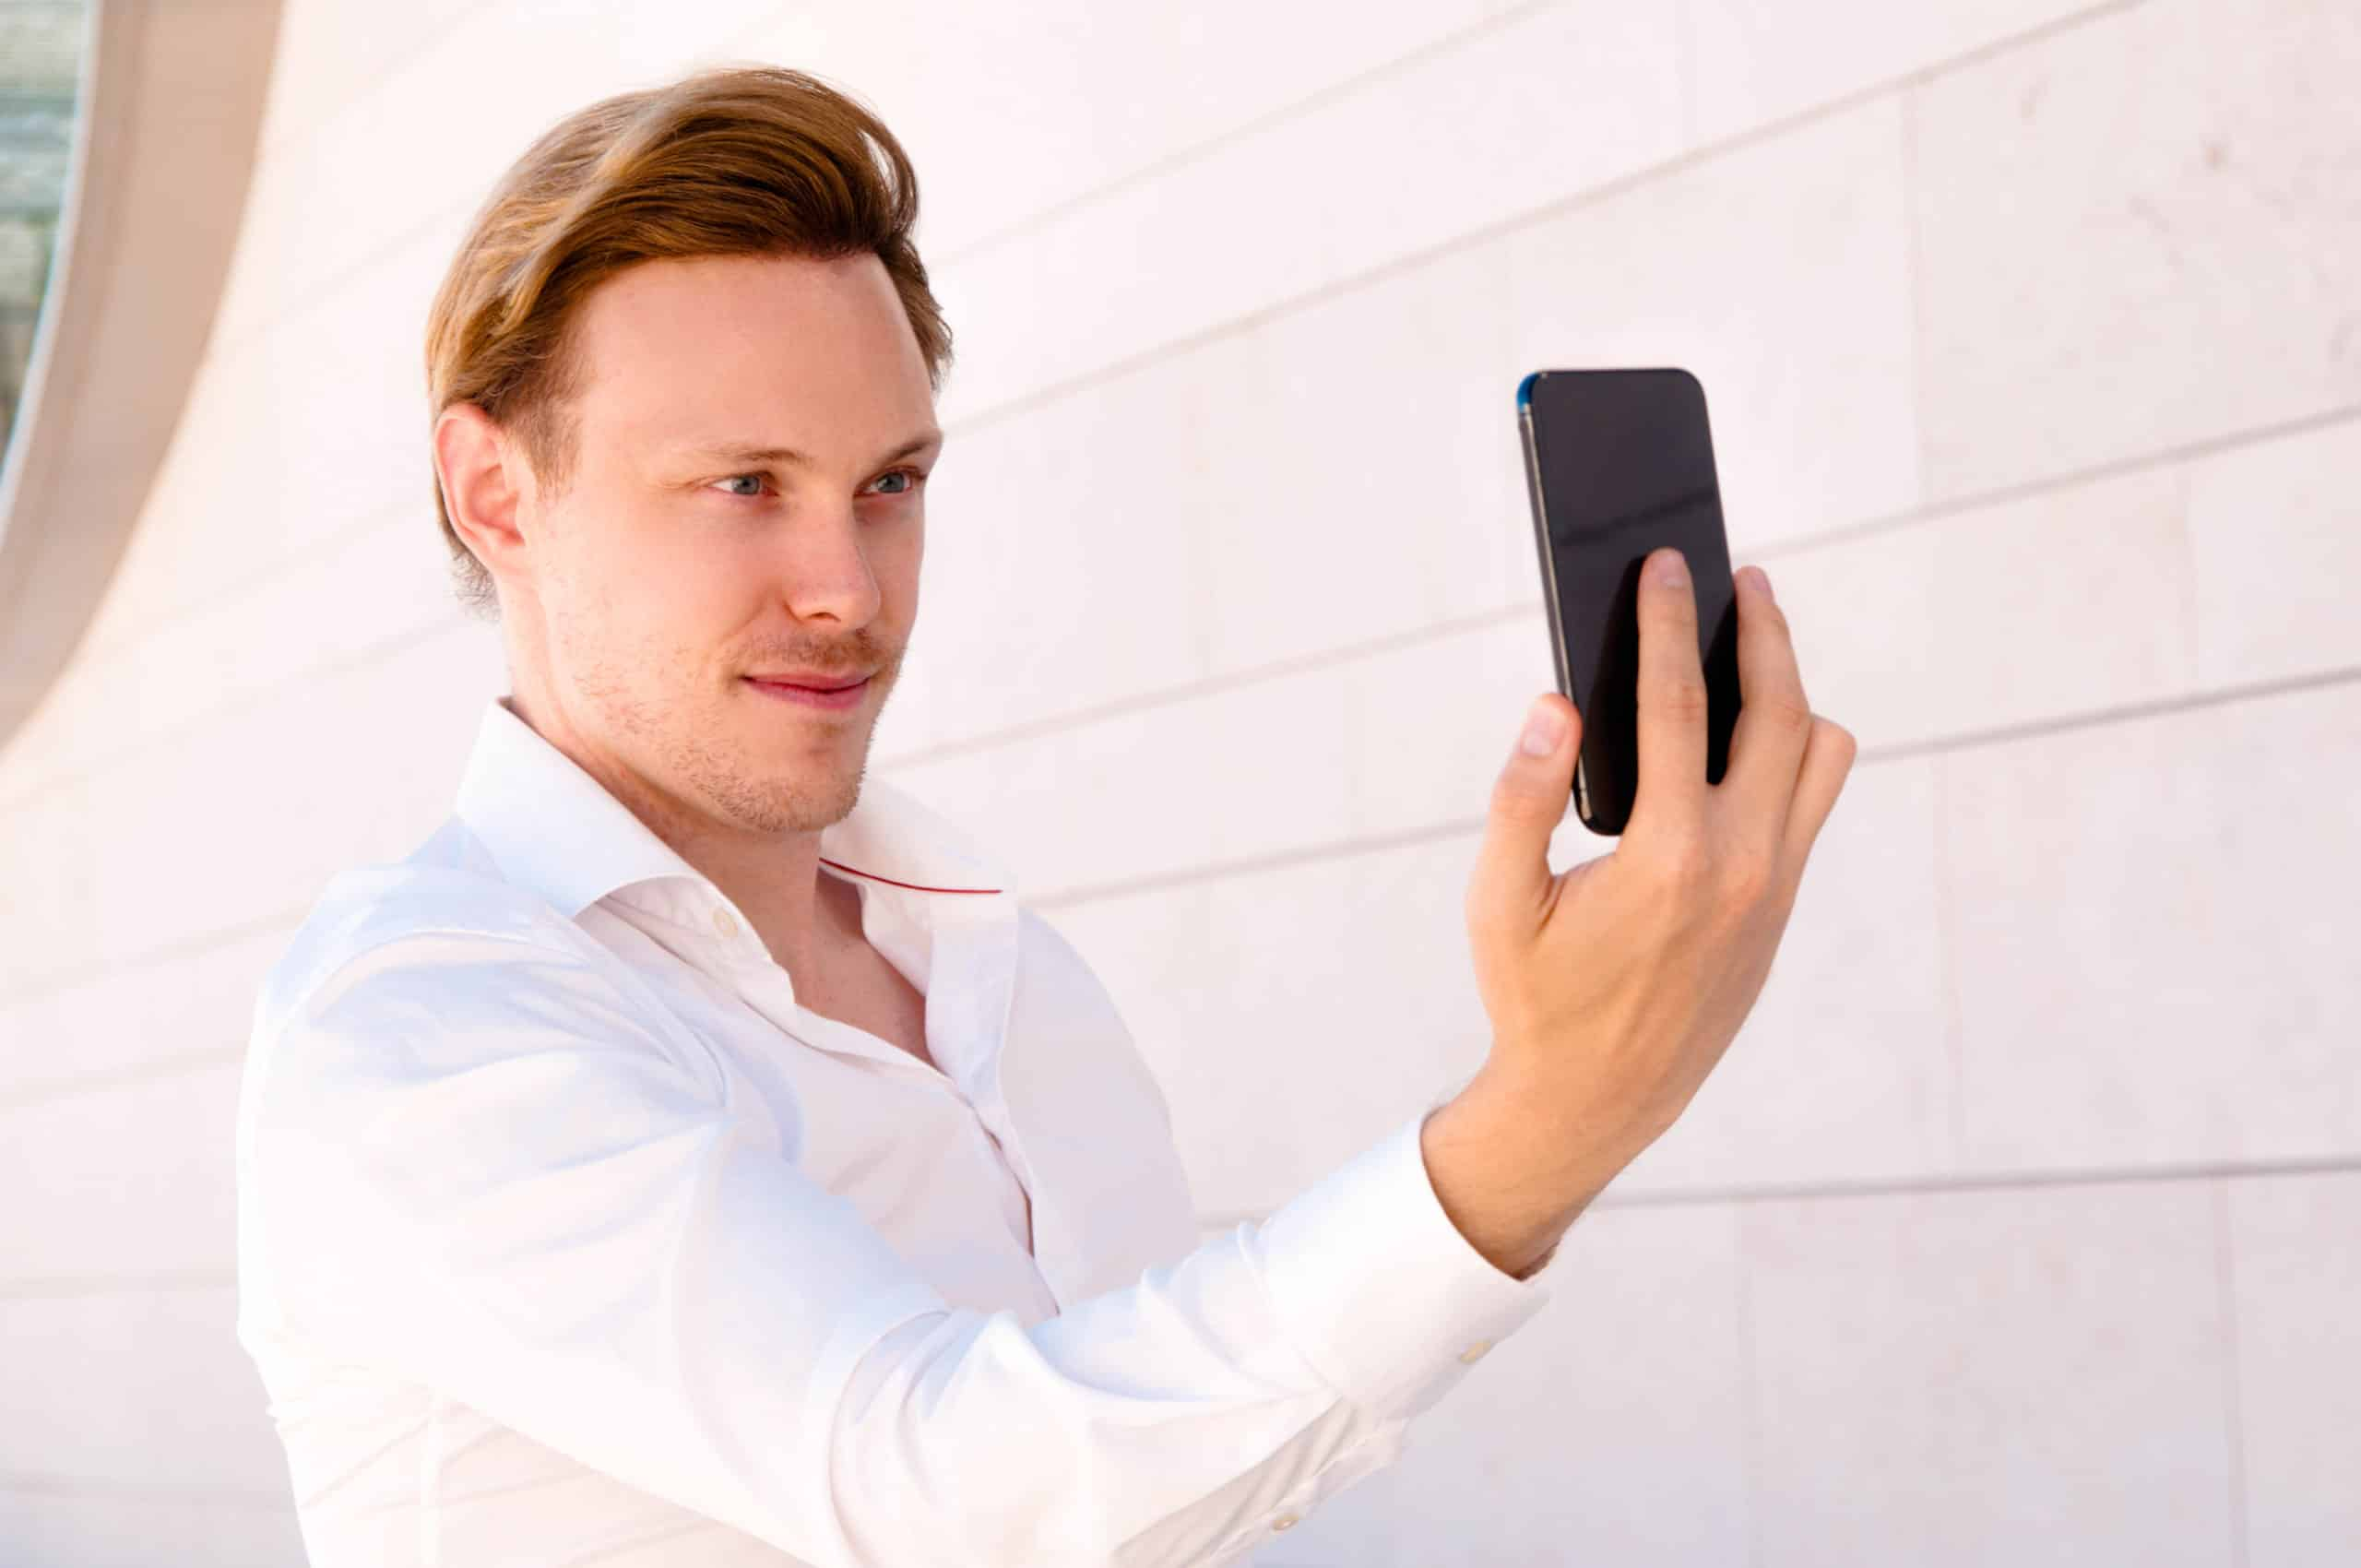 Confident business man posing and taking selfie photo outdoors. Guy posing and standing with building wall in background. Selfie concept.